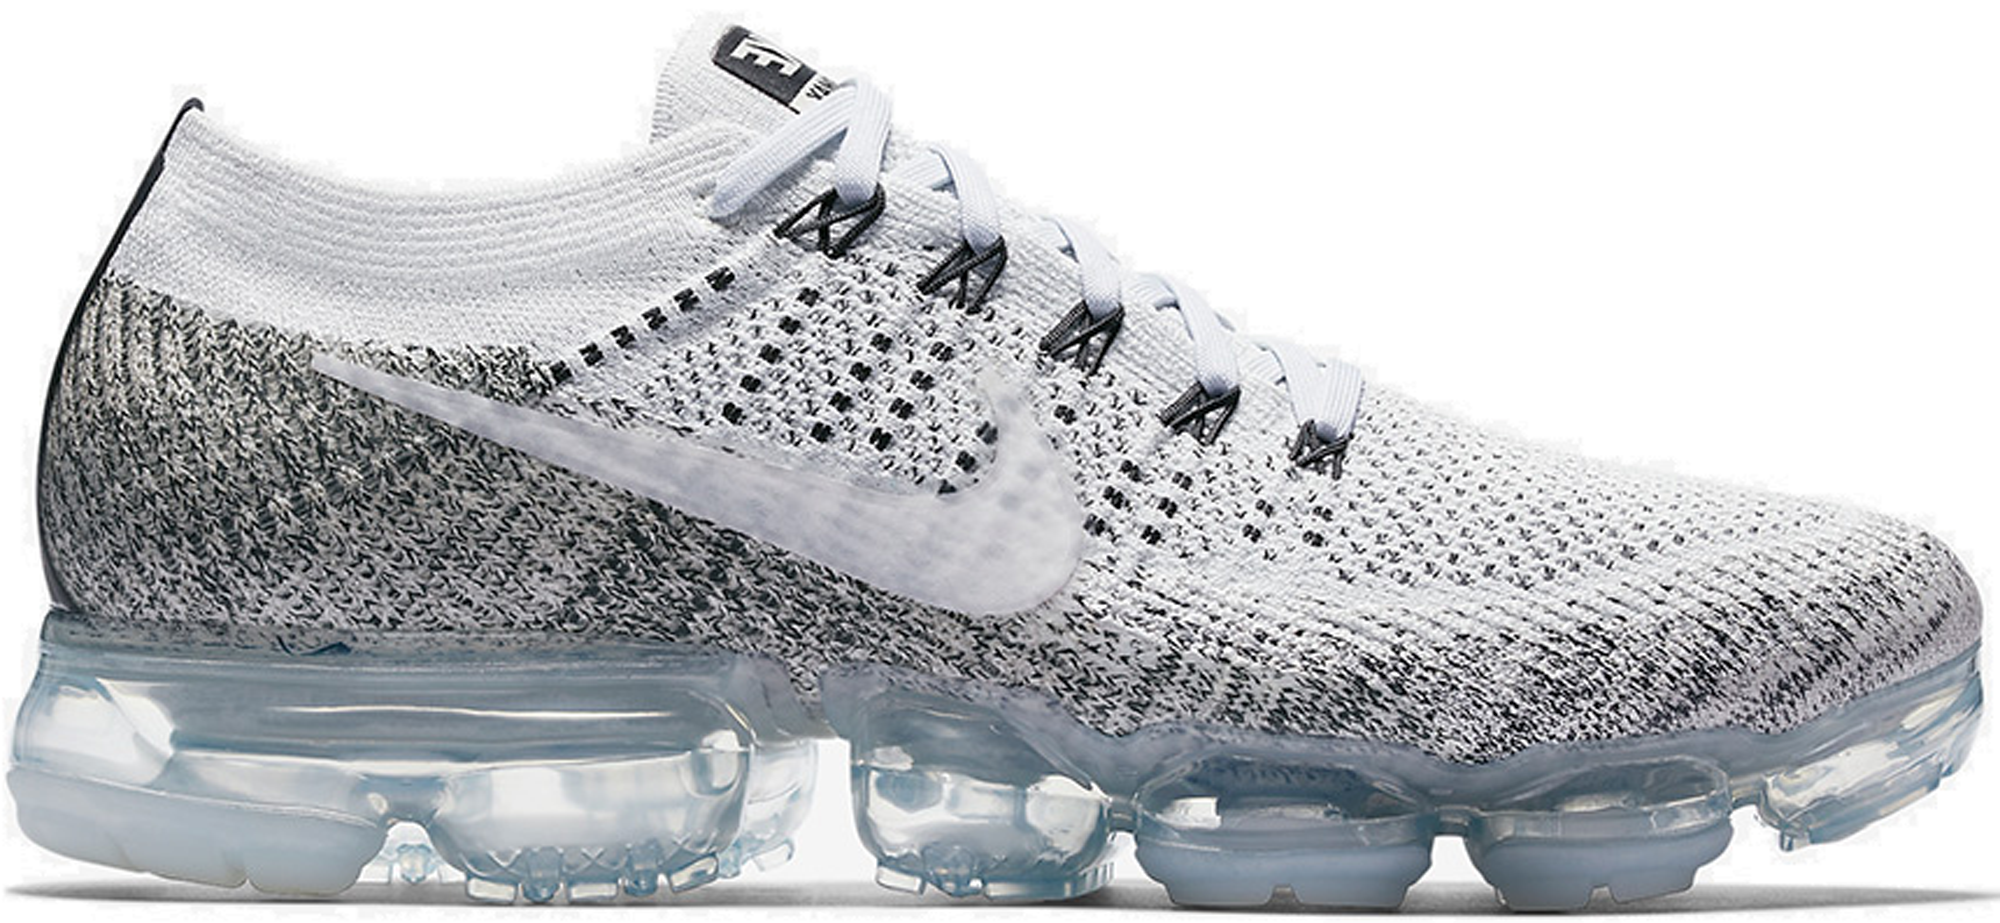 VAPORMAX The Revolution Never Ends